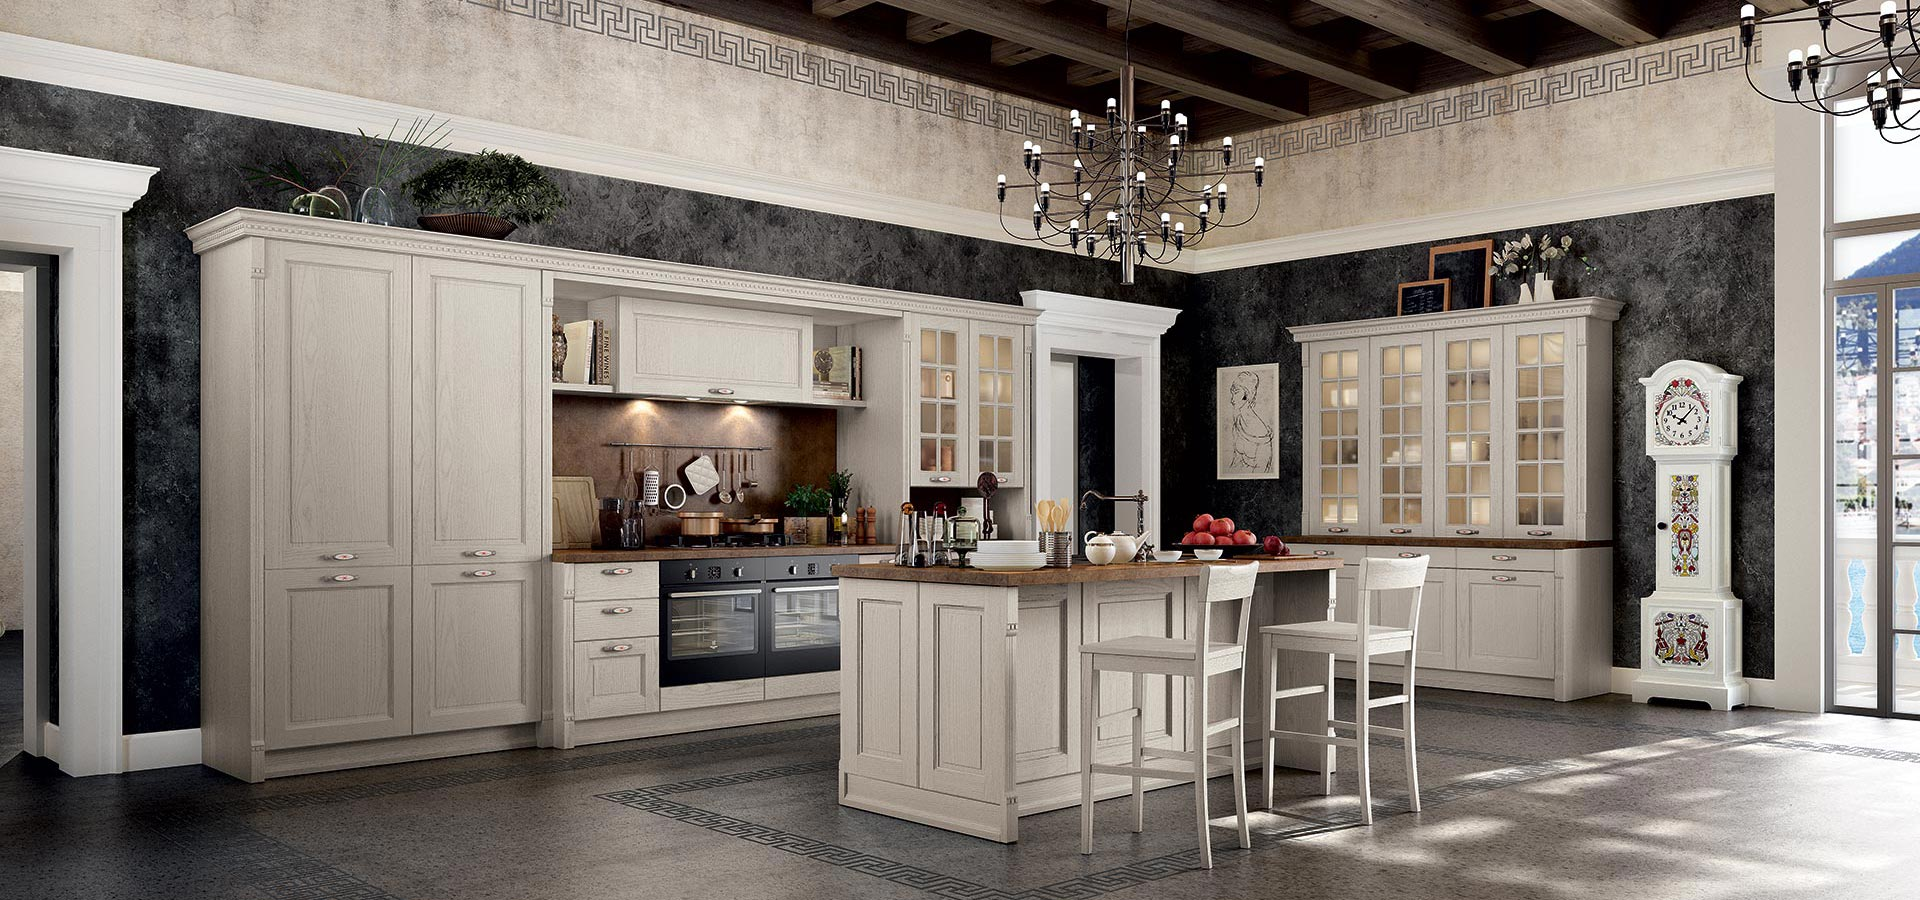 Virginia classical kitchen arredo3 for Cuisine classique